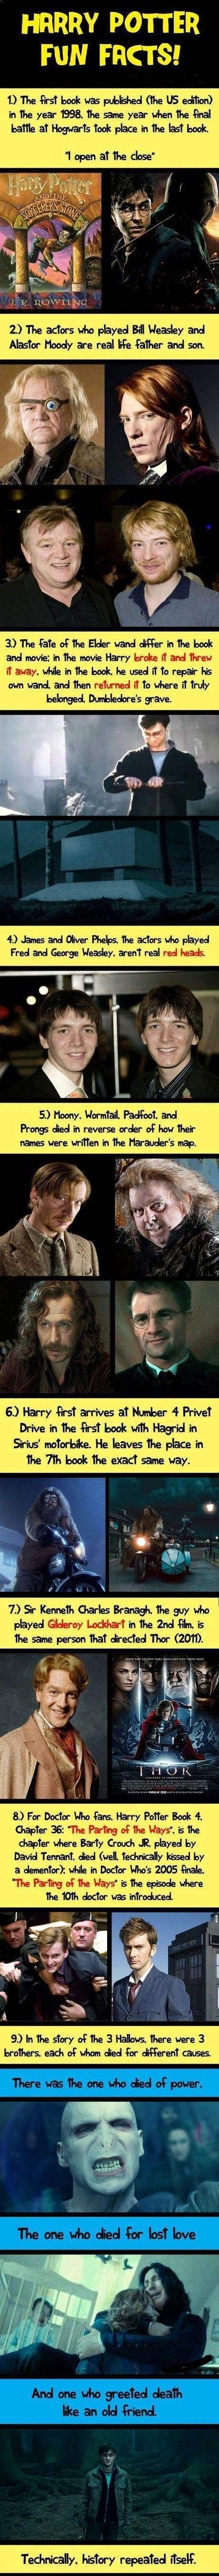 Harry Potter facts… - One Stop Humor: Funny Pictures and Videos!